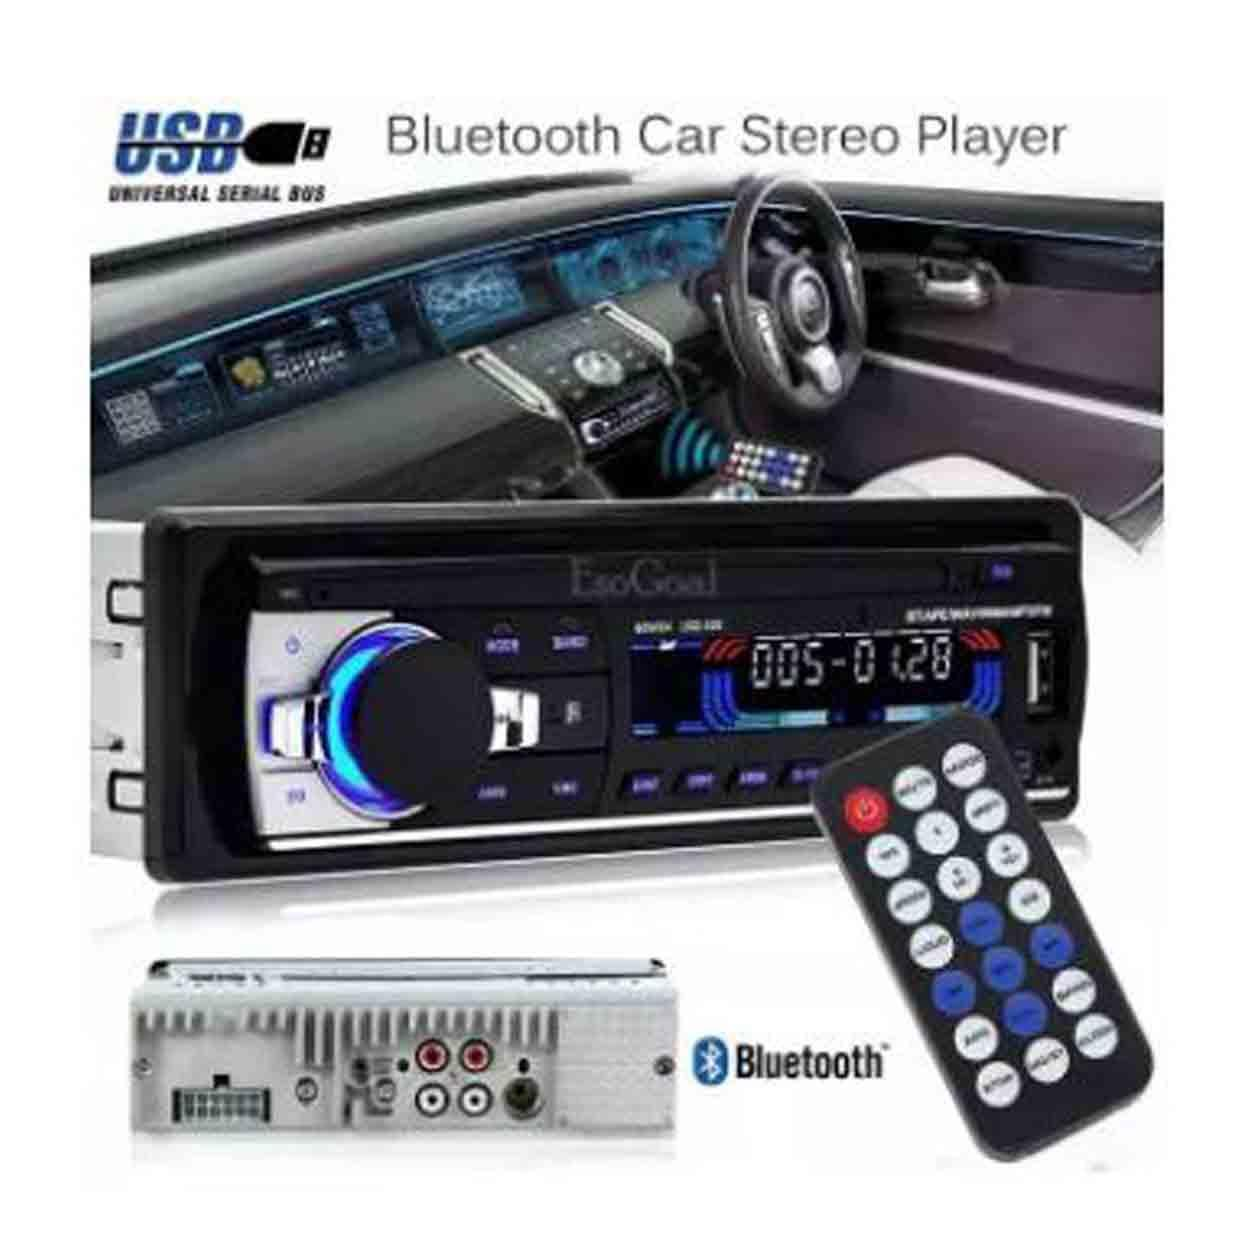 Car Stereo For Sale Cars Online Brands Prices Diagram Also Kenwood Double Din Further 2016 Sport Bluetooth Audio Single In Dash 12v Fm Receiver Mp3 Radio Player With Remote